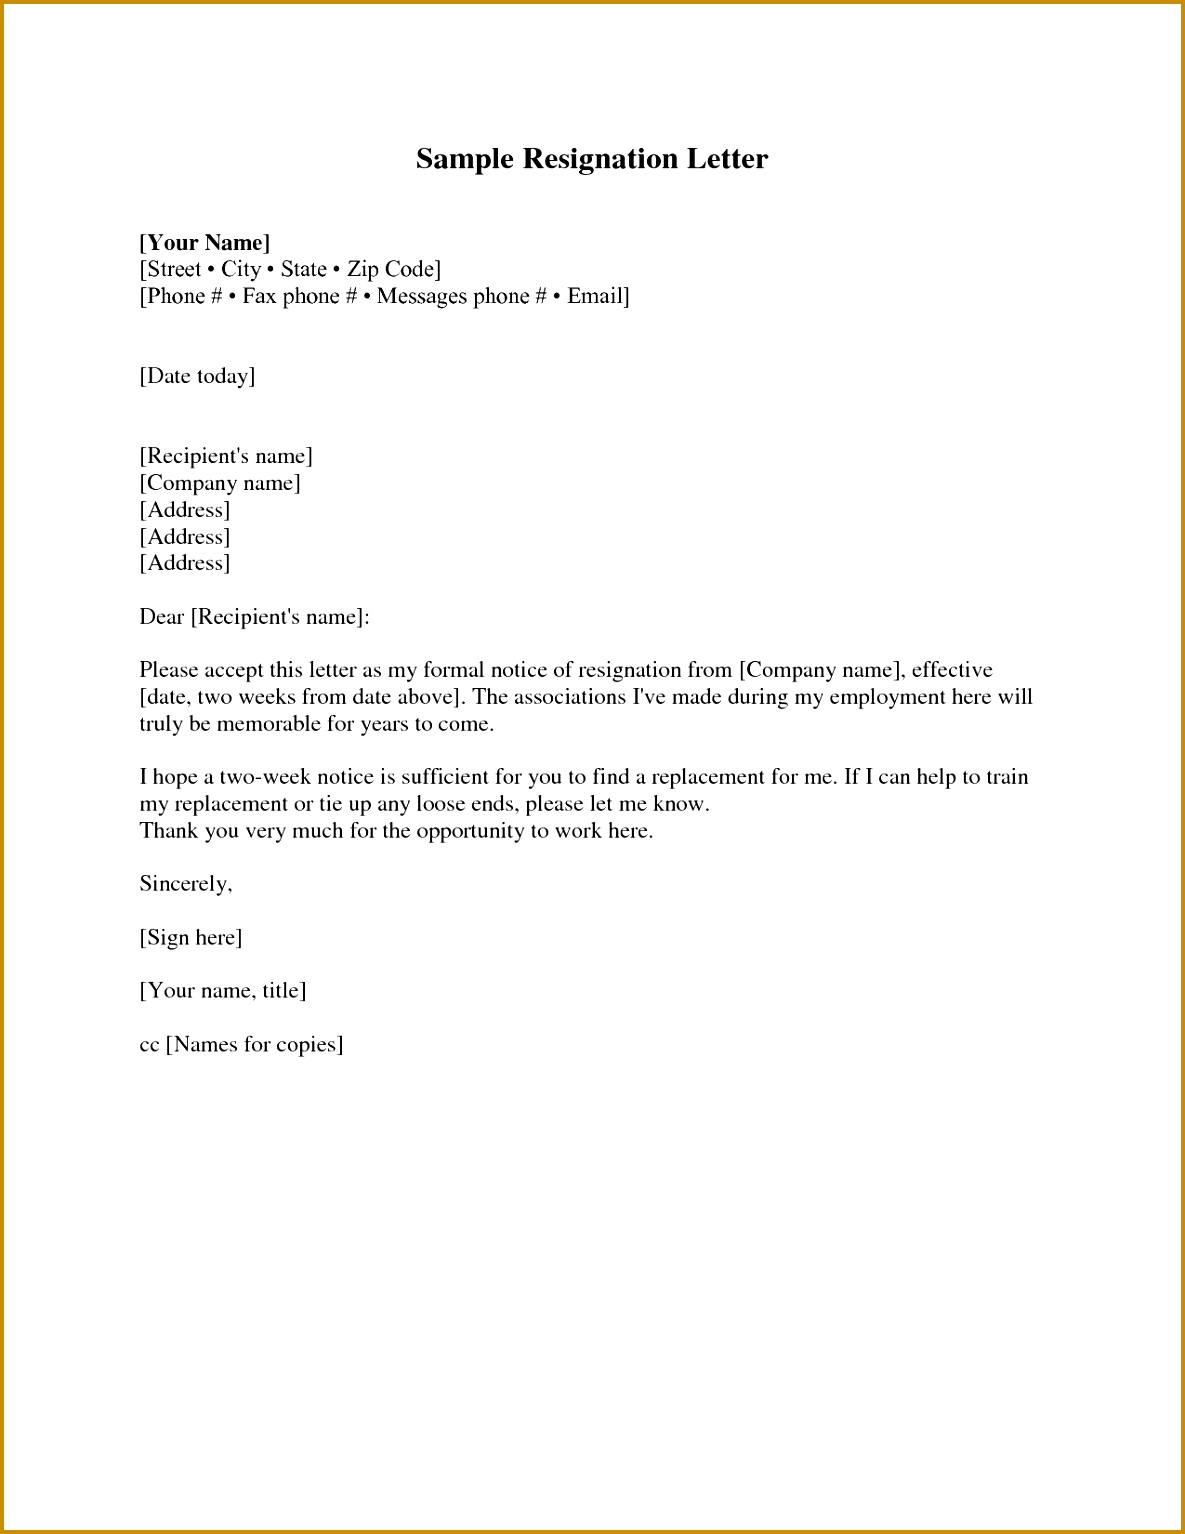 Letter To Quit Job Example Valid Resignation Letter Sample 2 Weeks Notice Free2img 15341185